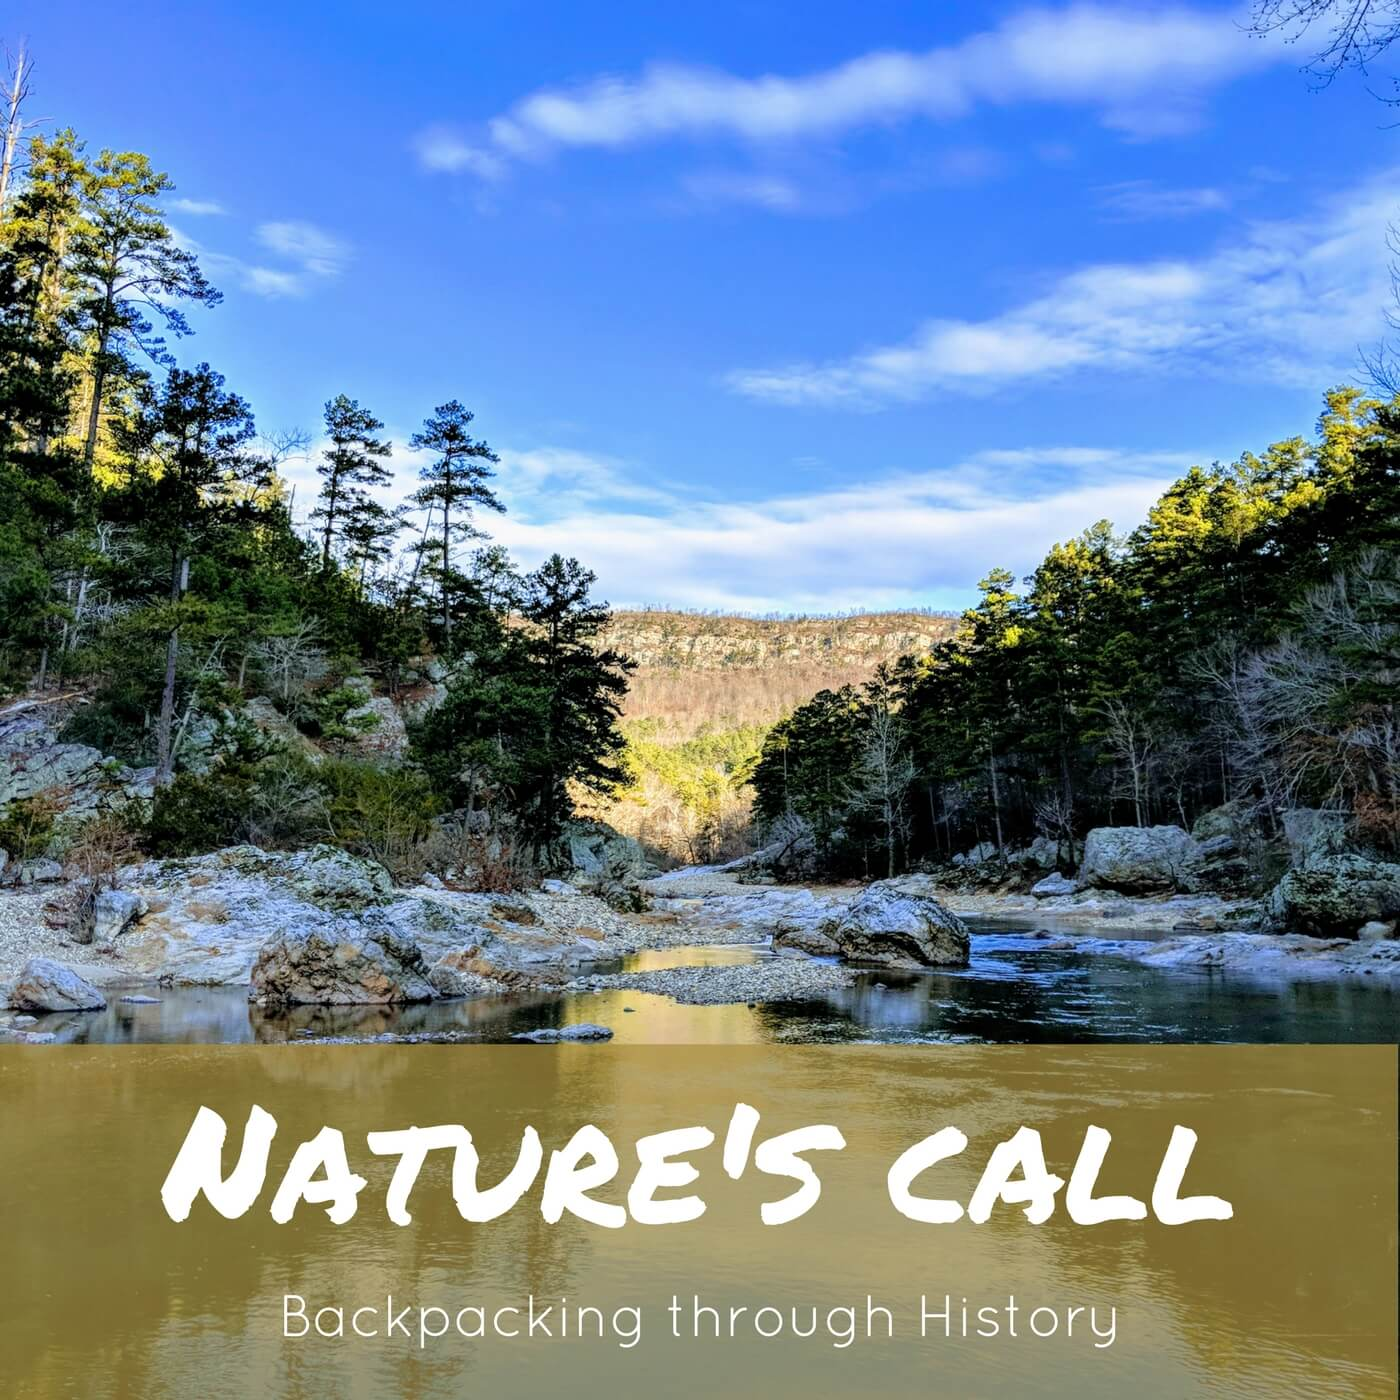 Nature's Call: Backpacking Through History